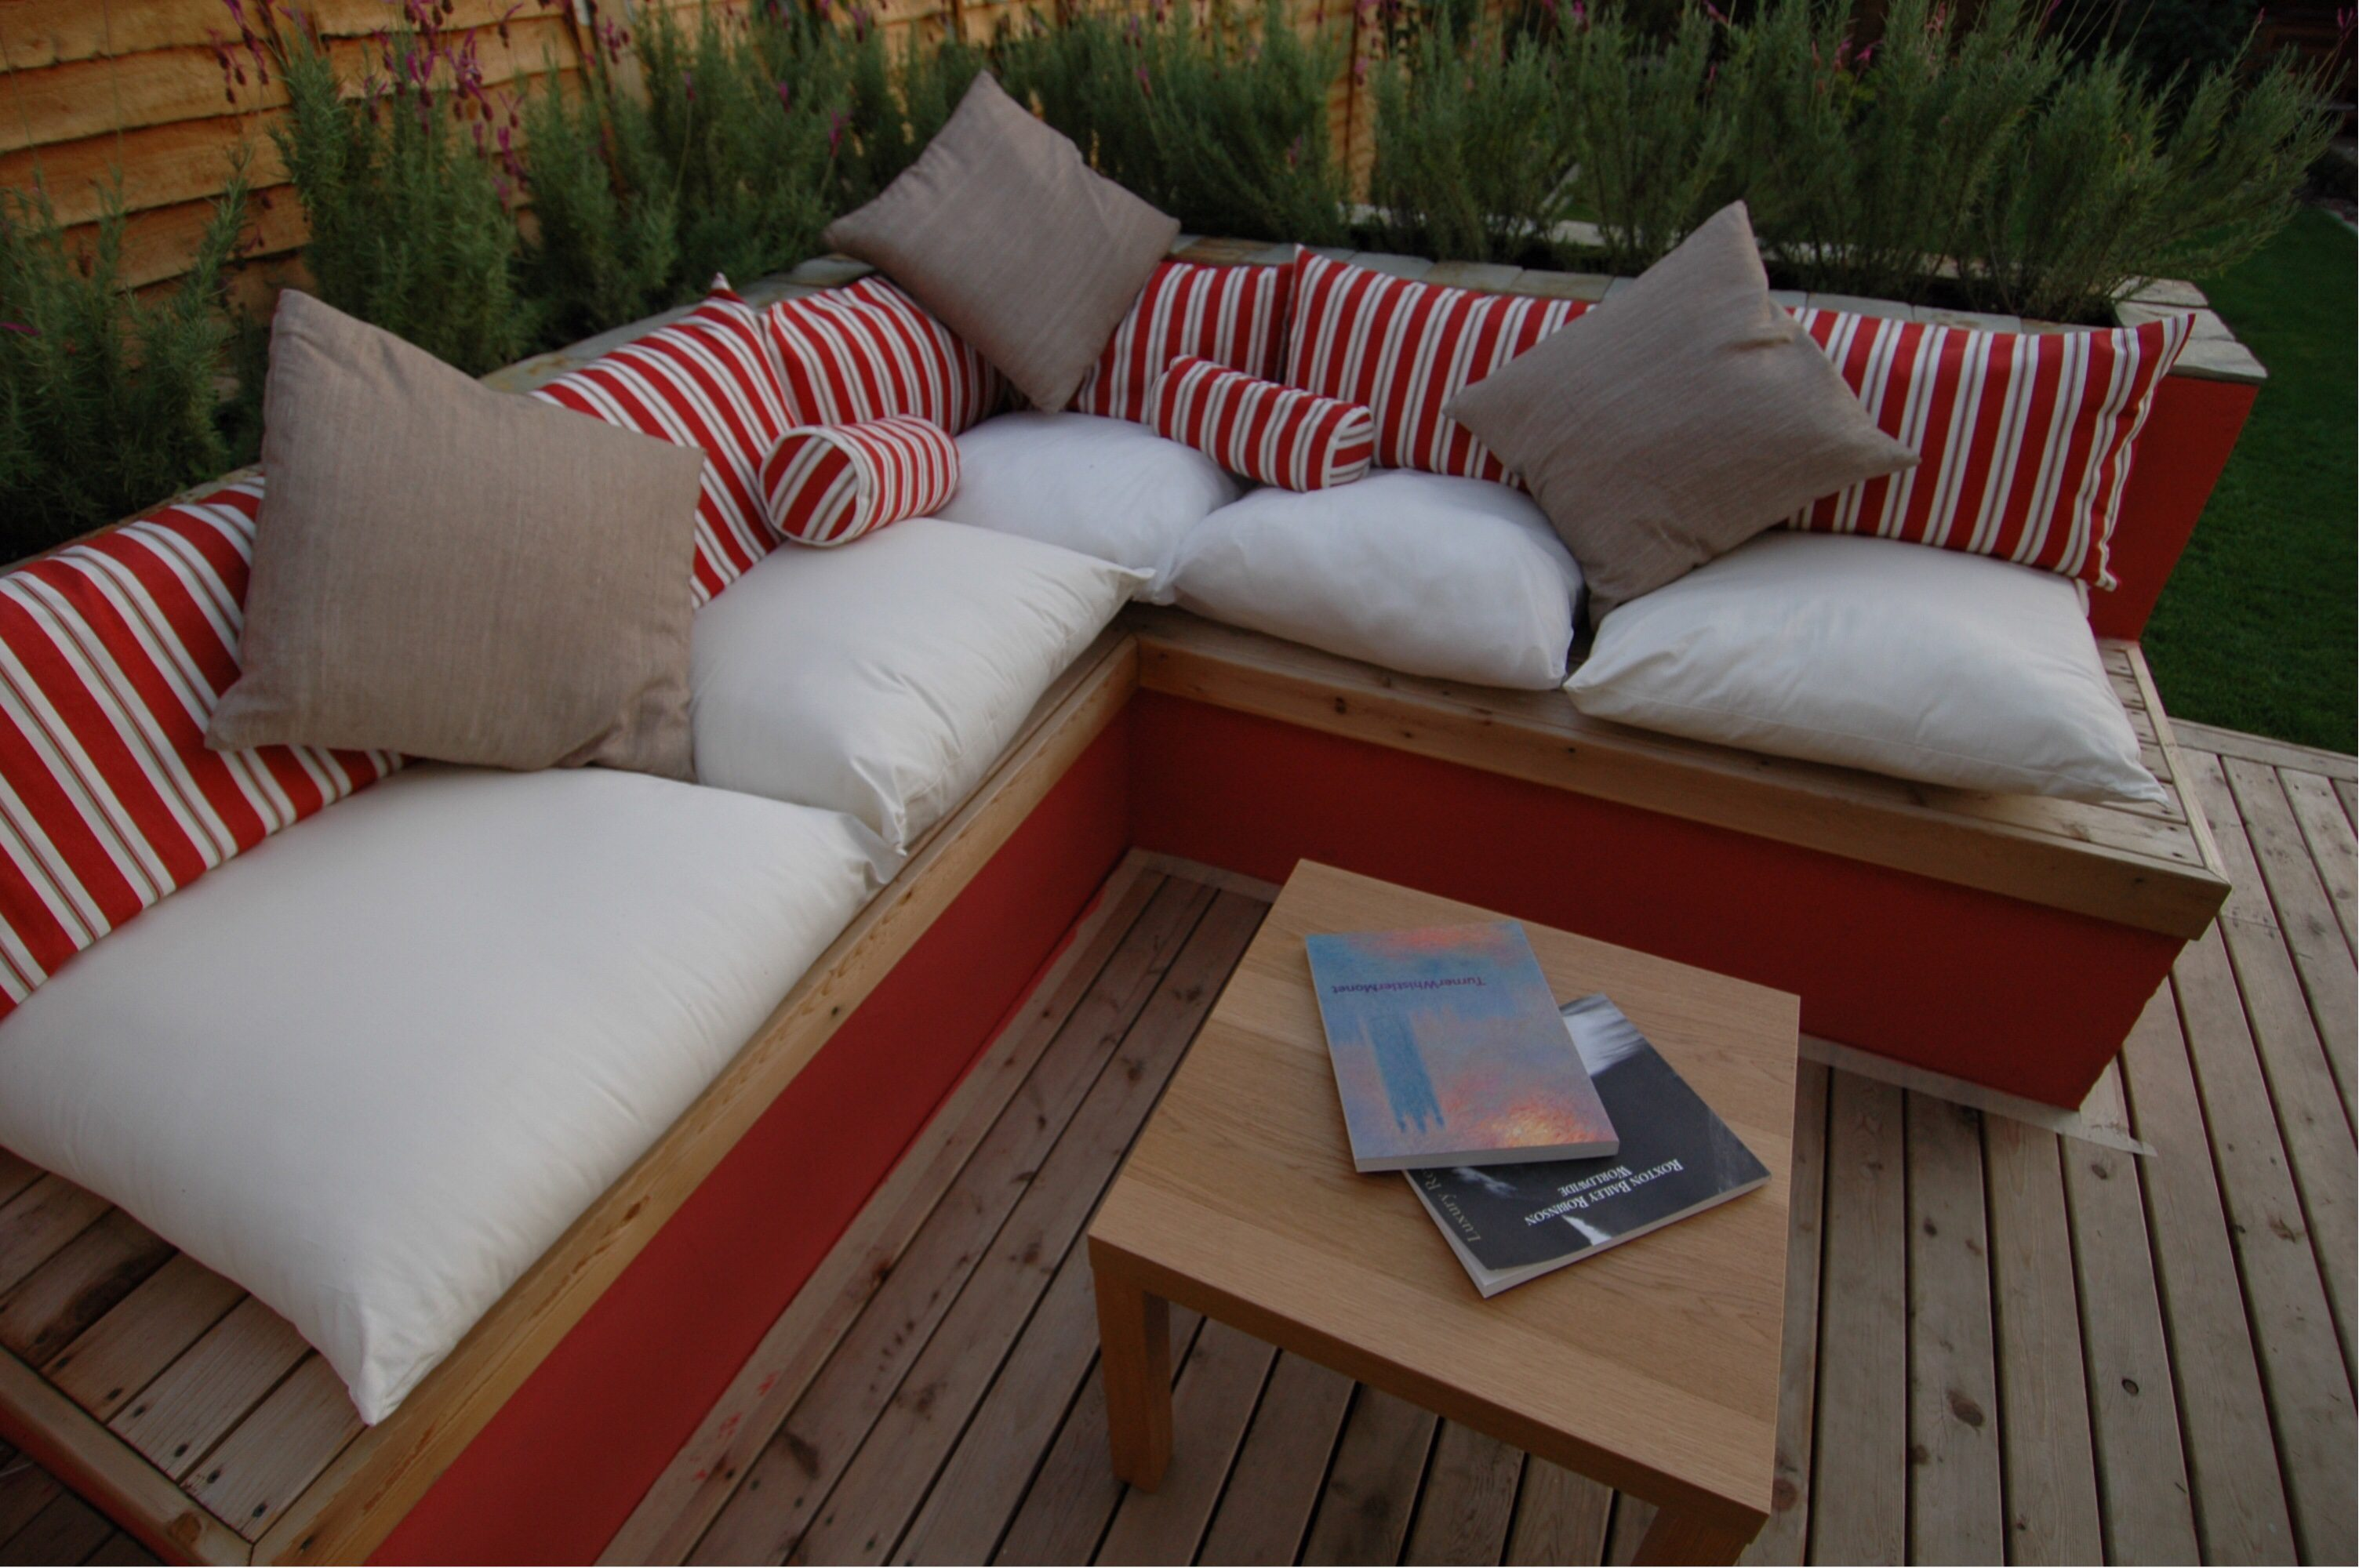 Add furniture to your garden patio design for a softer look